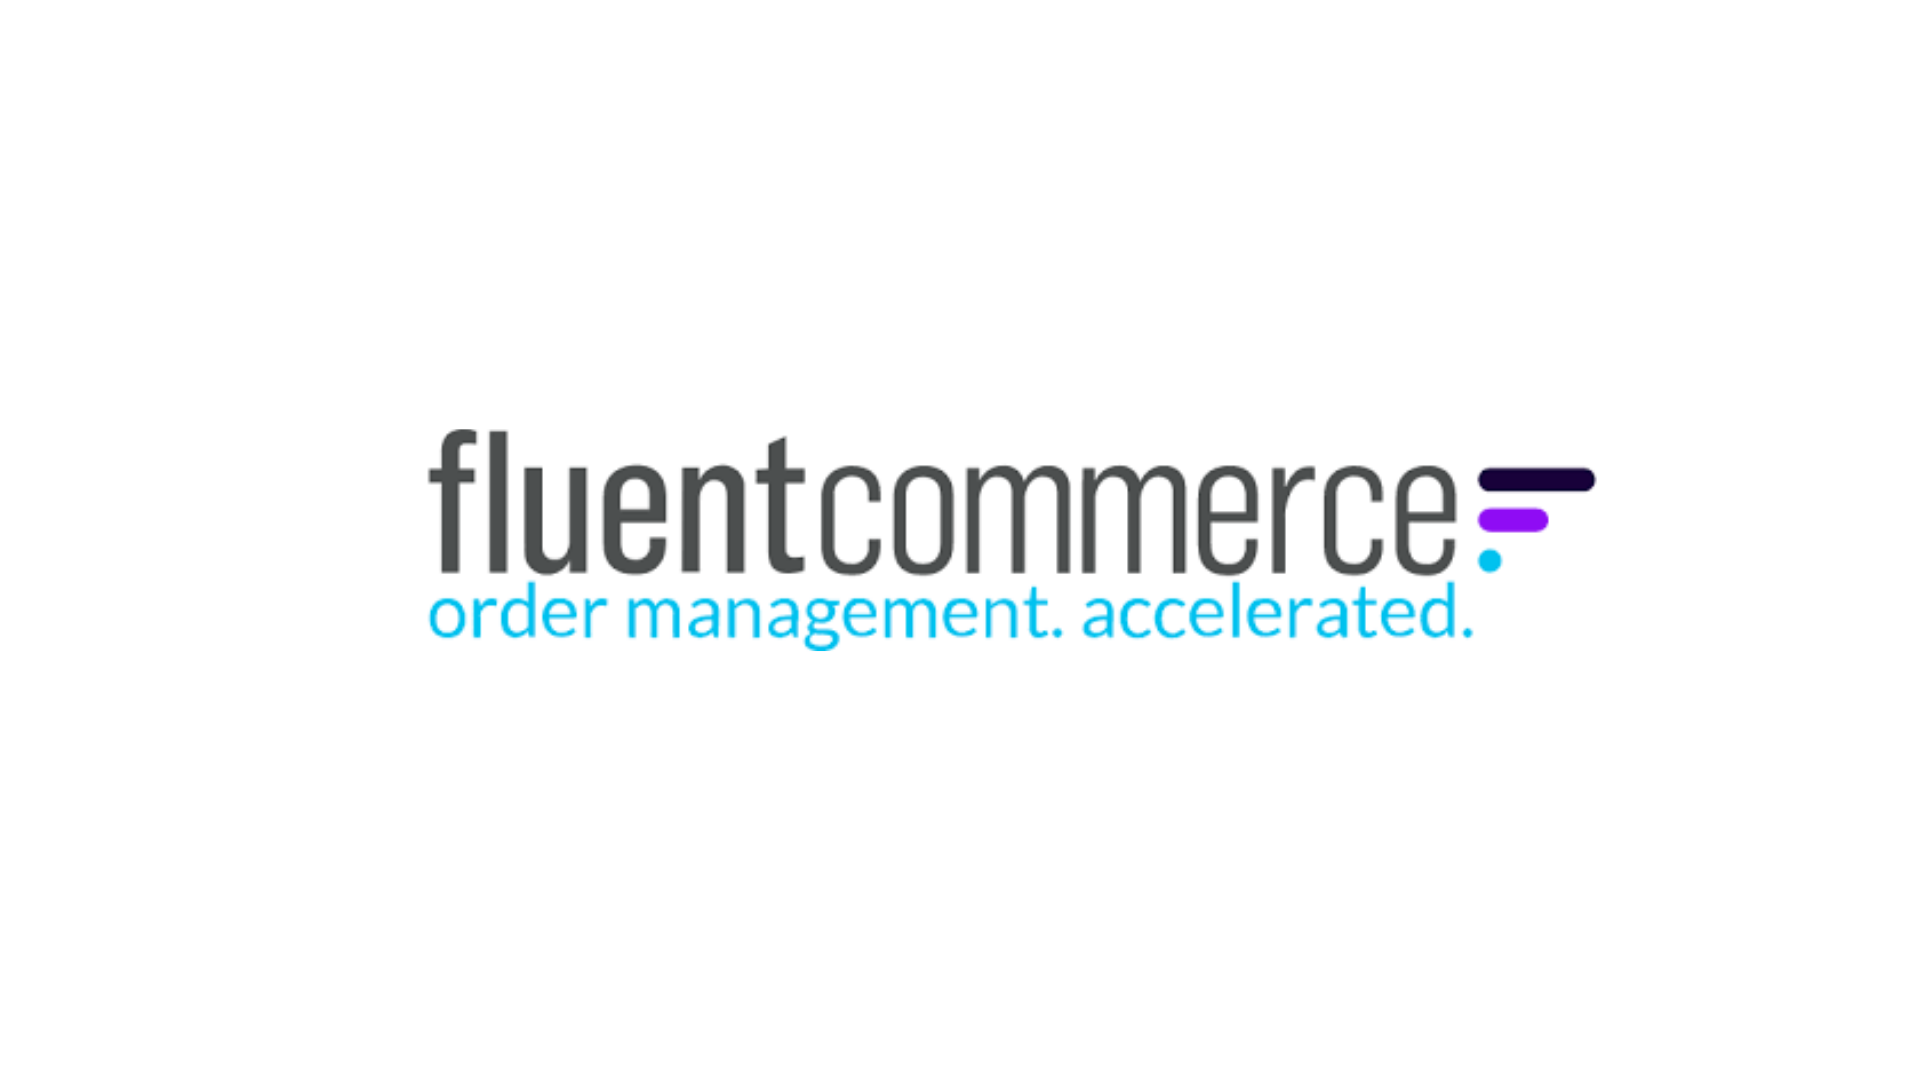 Fluent Commerce – Channelling the power of eCommerce